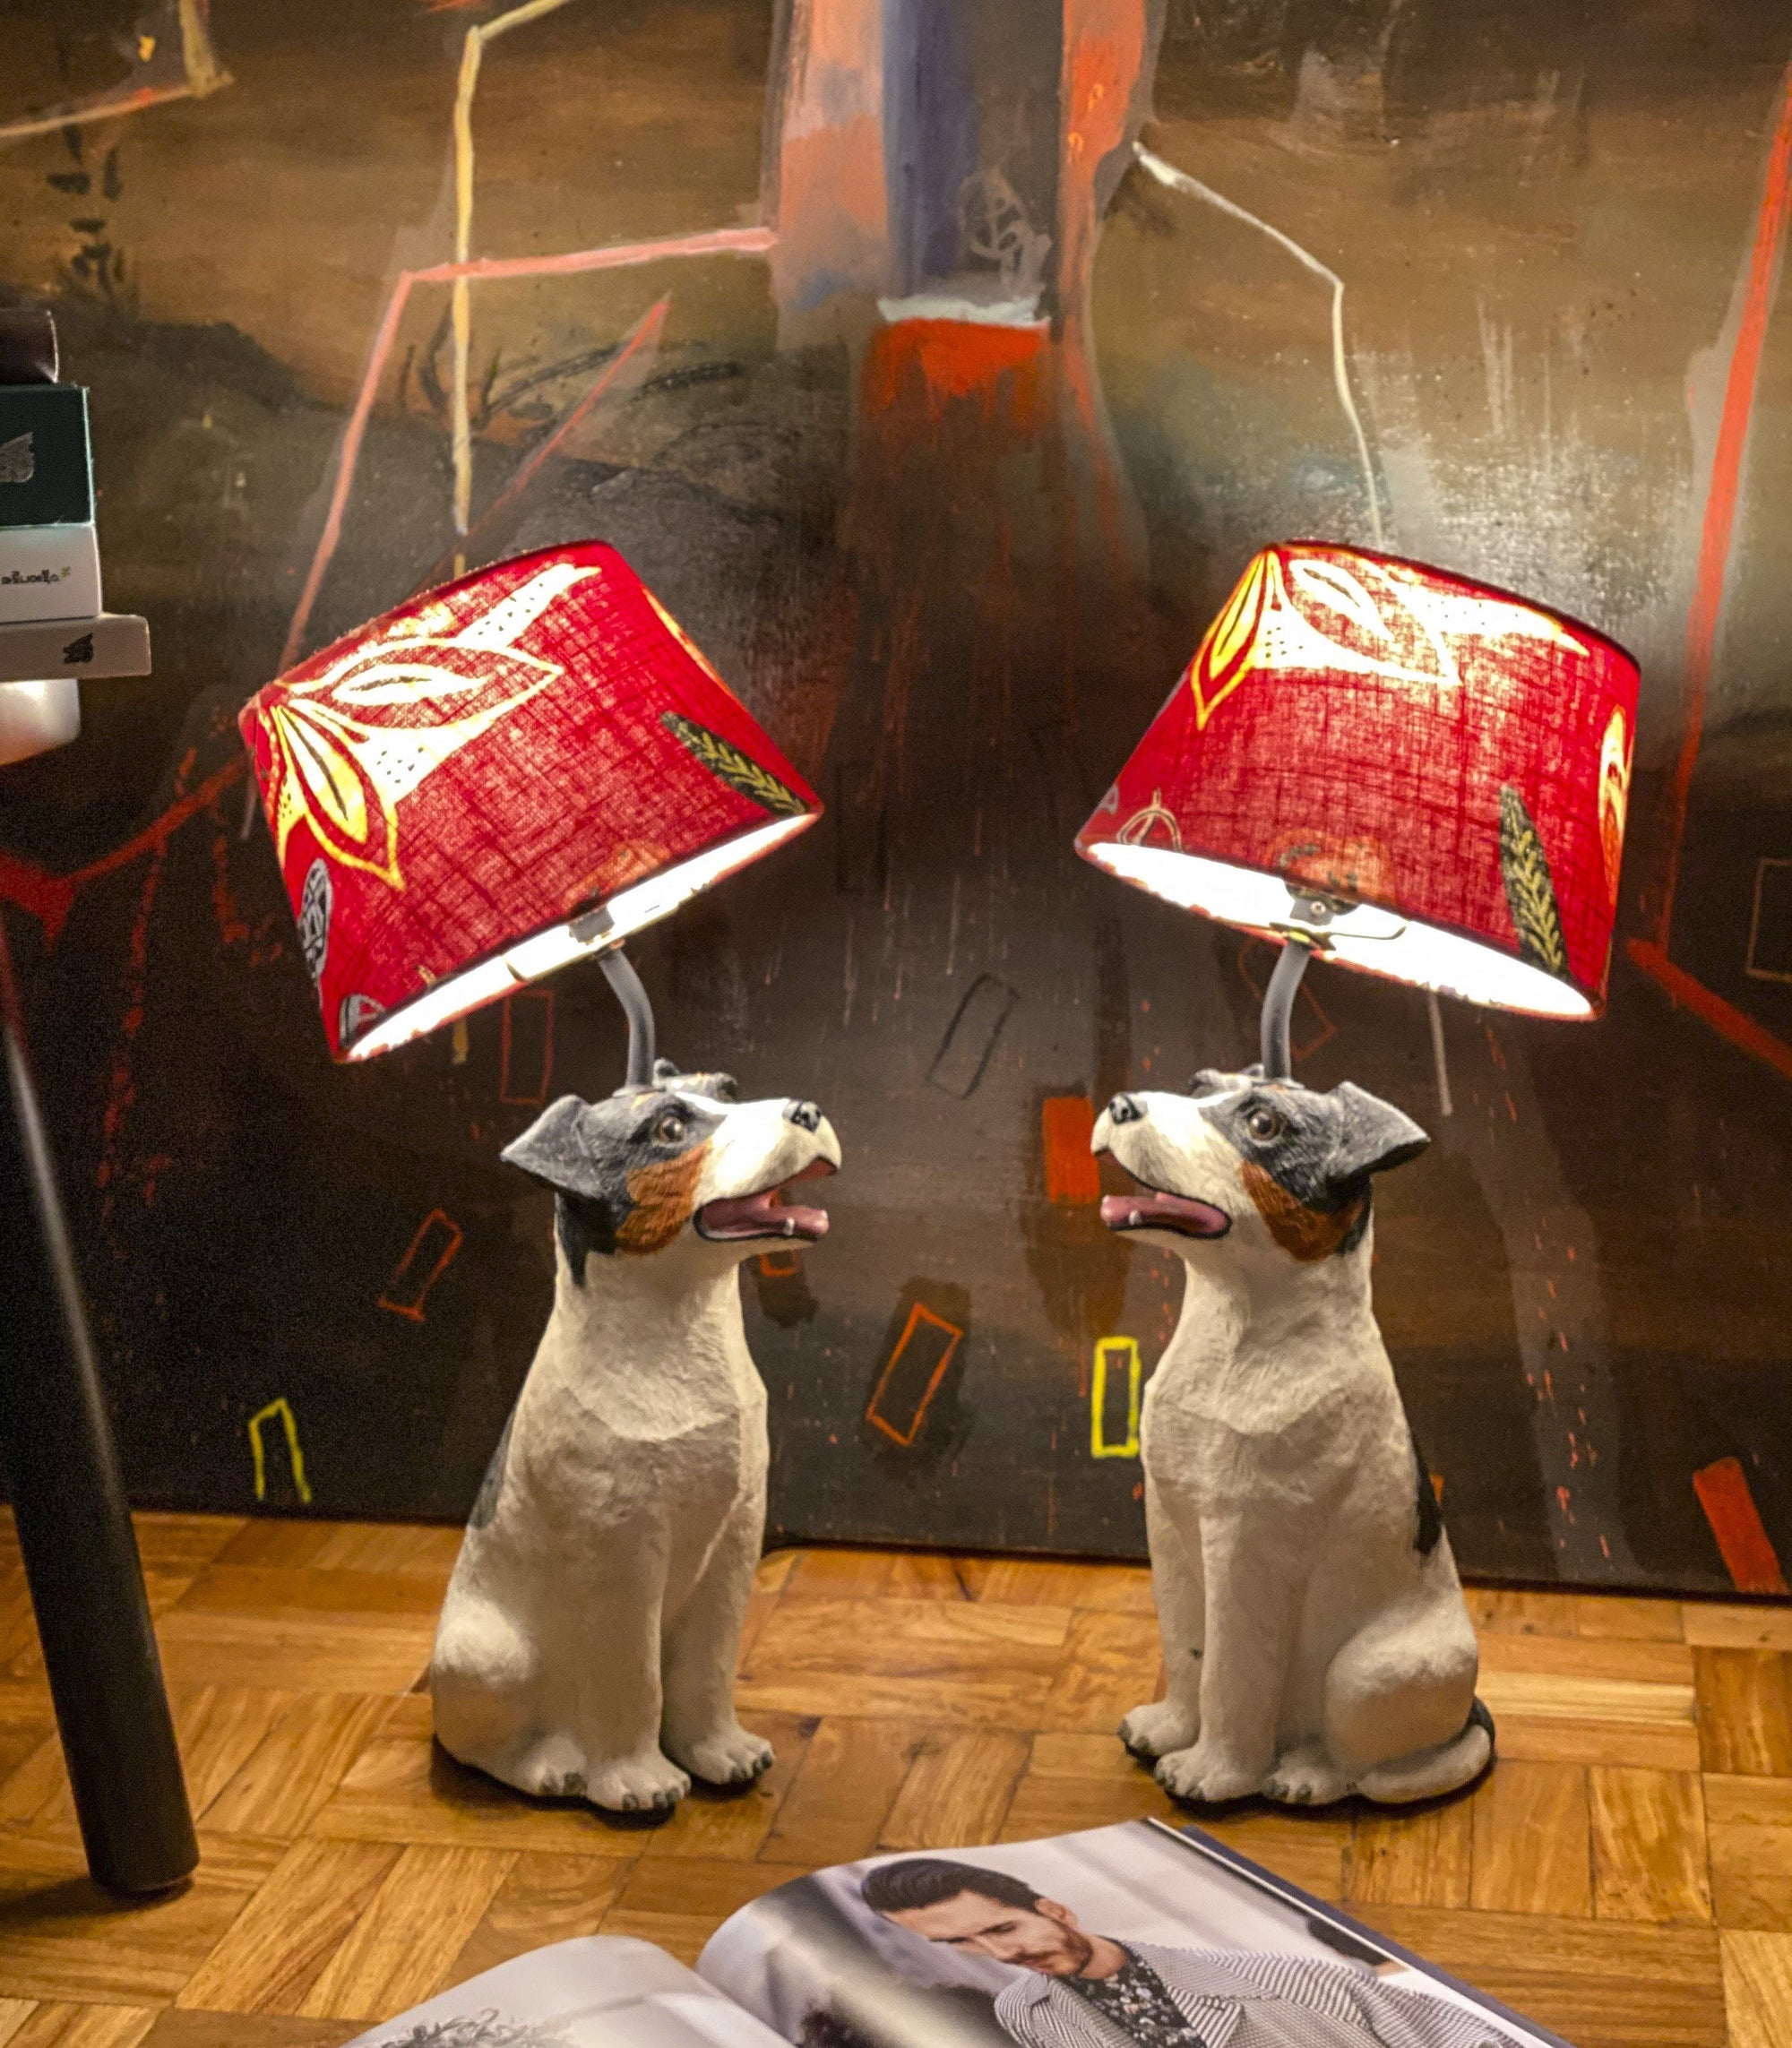 Lamp - Solano Pair Of Resin Dogs Table Lamp